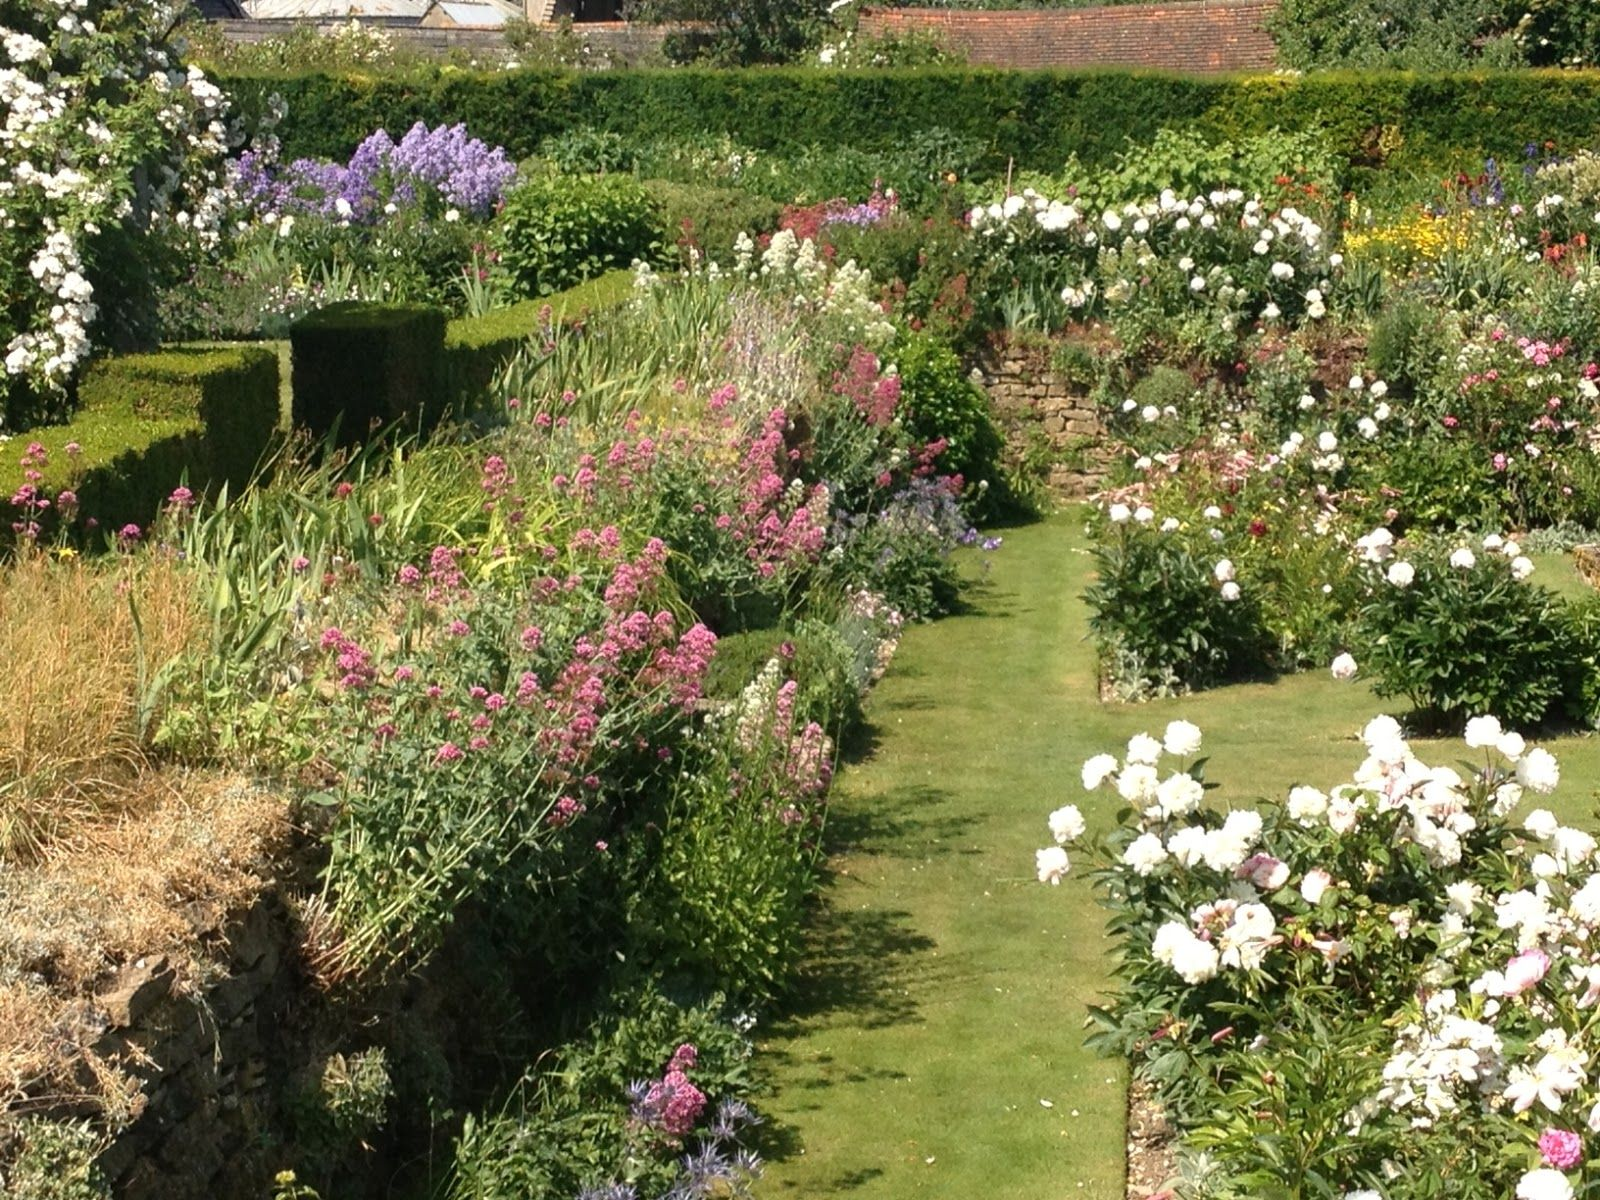 Gertrude jekyll gardens the manor house upton grey for Gertrude jekyll garden designs